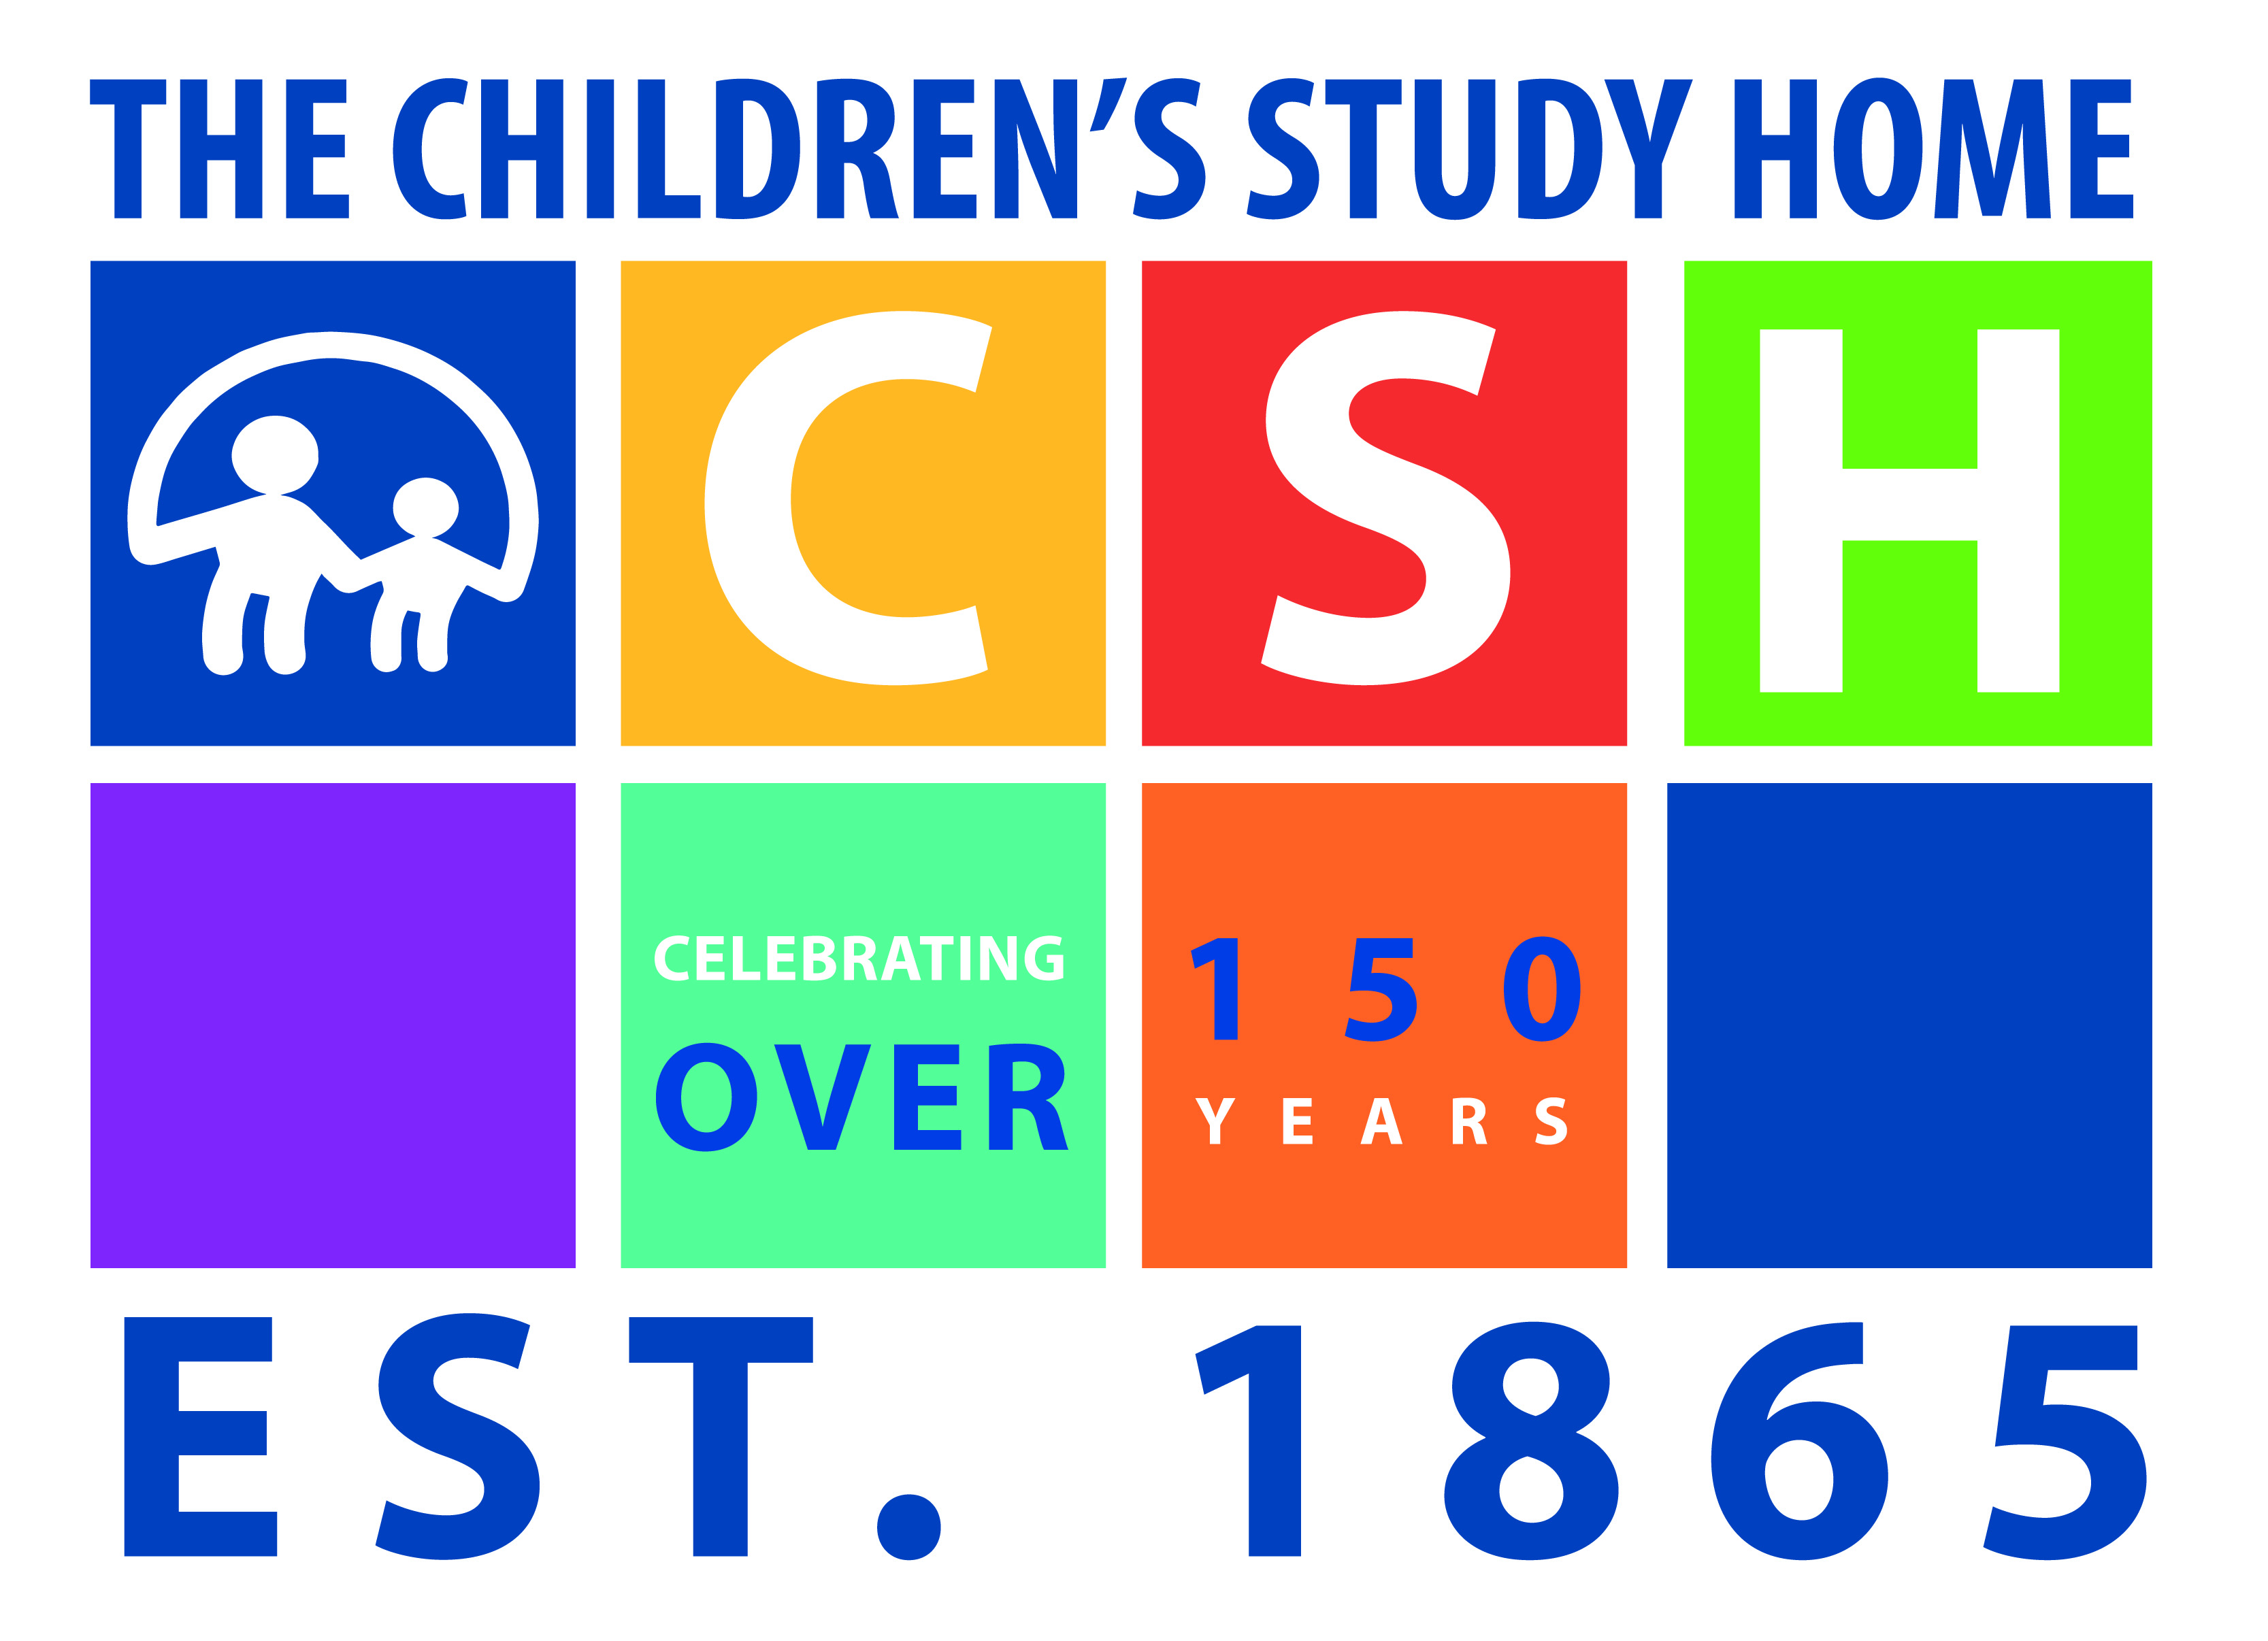 CHILDRENS STUDY HOME - SPRINGFIELD, MA - Business Data